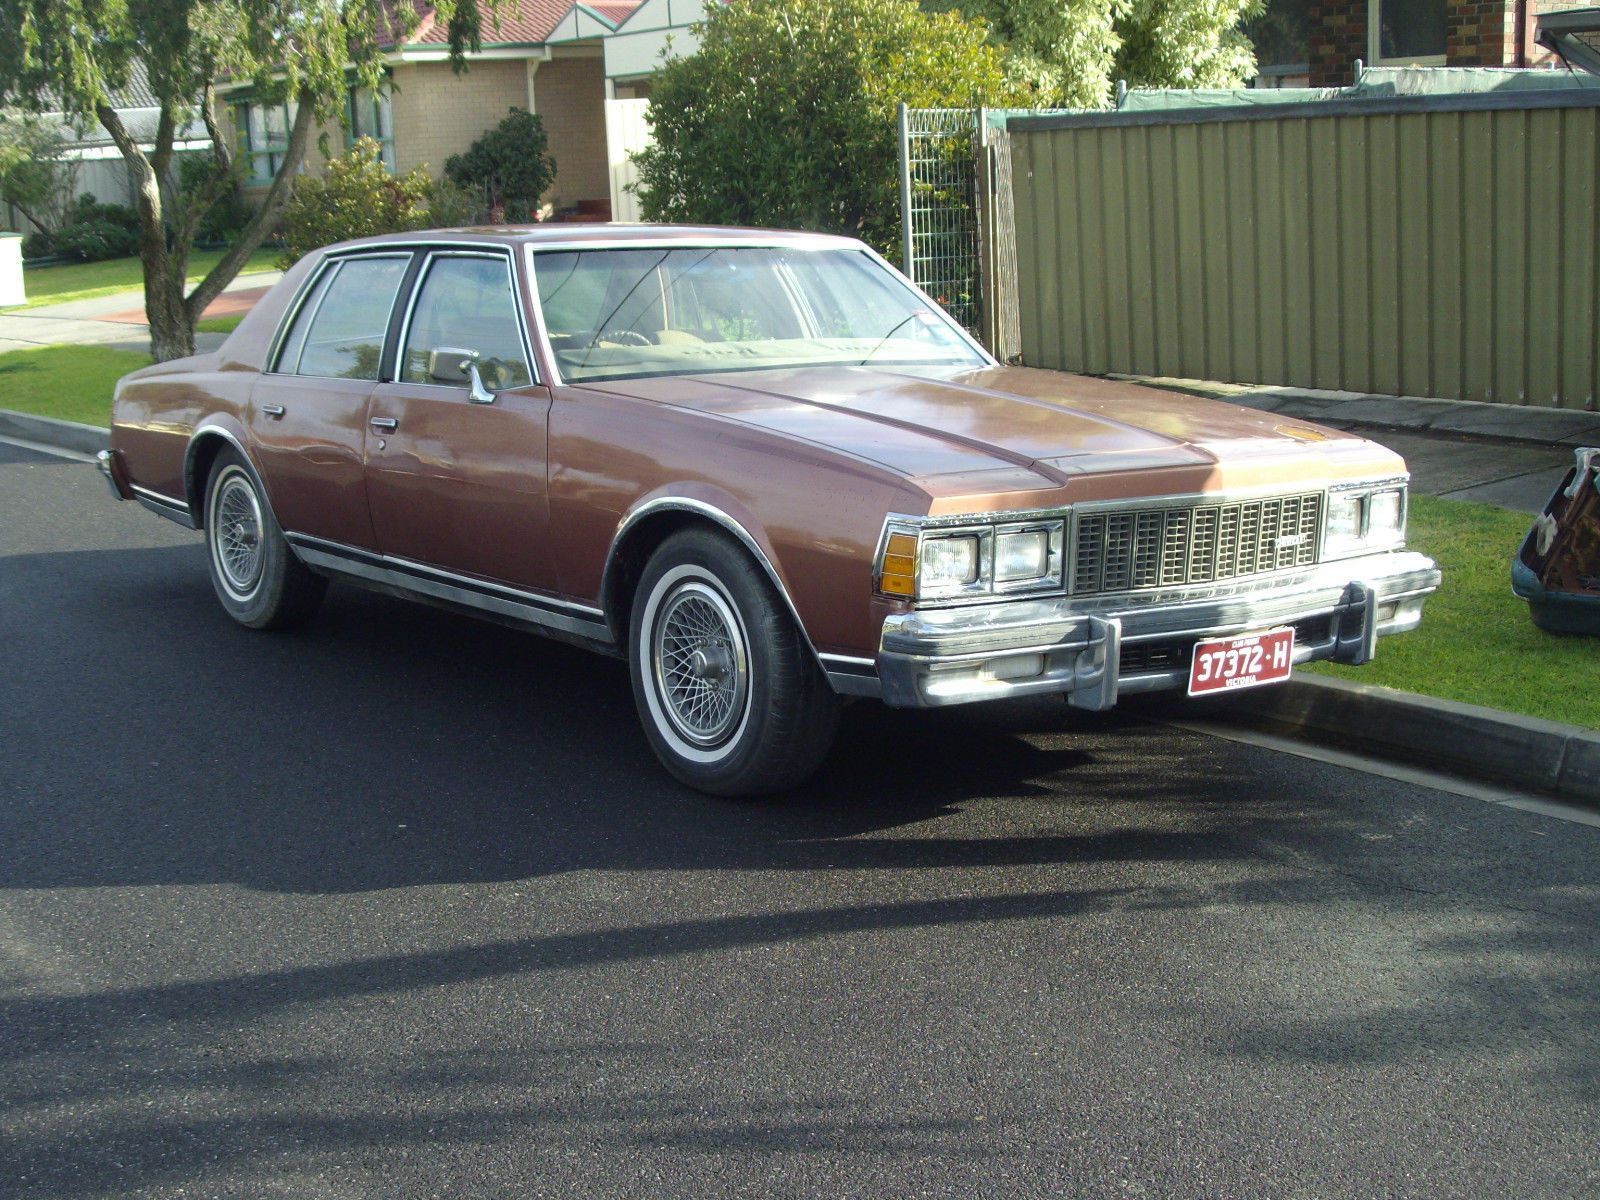 Chevrolet Classic Caprice 1980 350 Motor. Imported